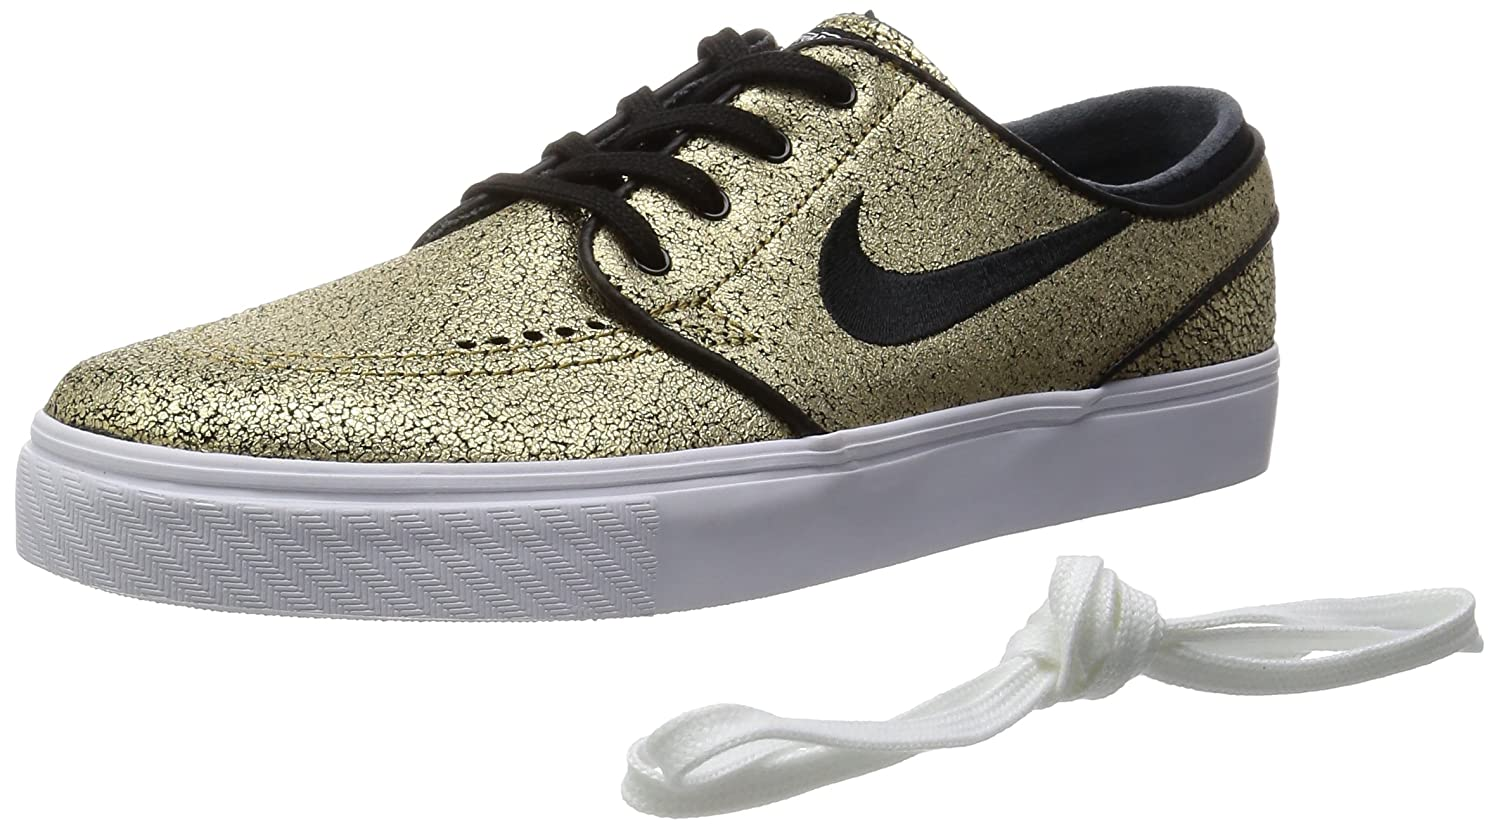 sports shoes d5a94 8cb2d Amazon.com   Nike SB Zoom Stefan Janoski Leather Metallic Gold White Gum  Light Brown Black Skate Shoes-Men 9.5, Women 11.0   Skateboarding